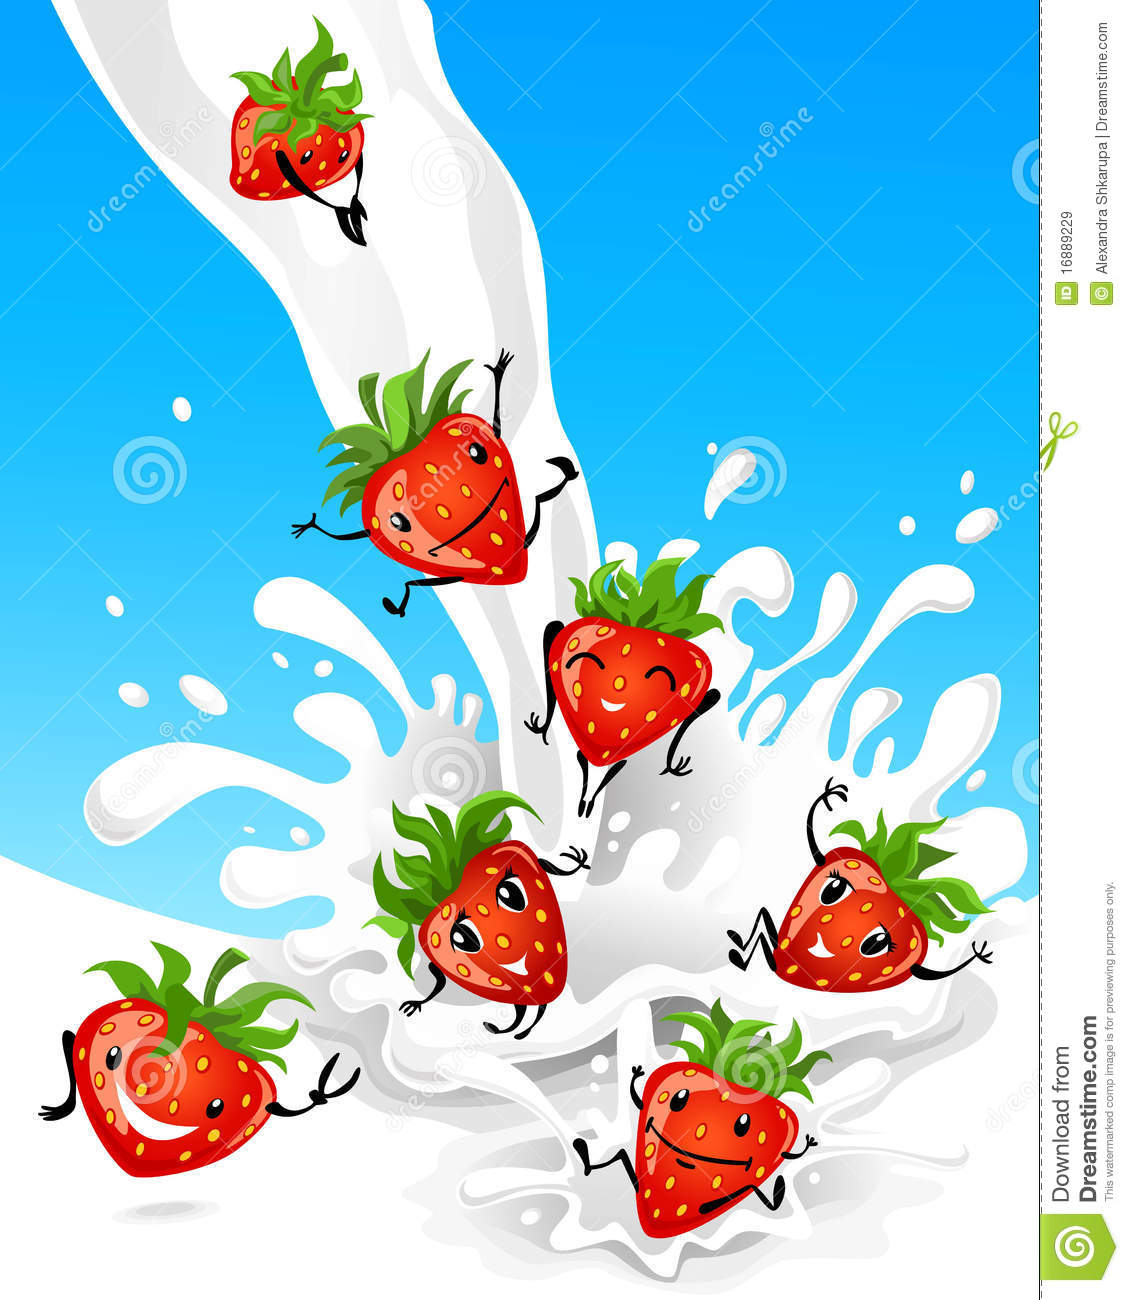 Strawberry Having Fun In Milk Royalty Free Stock Images.